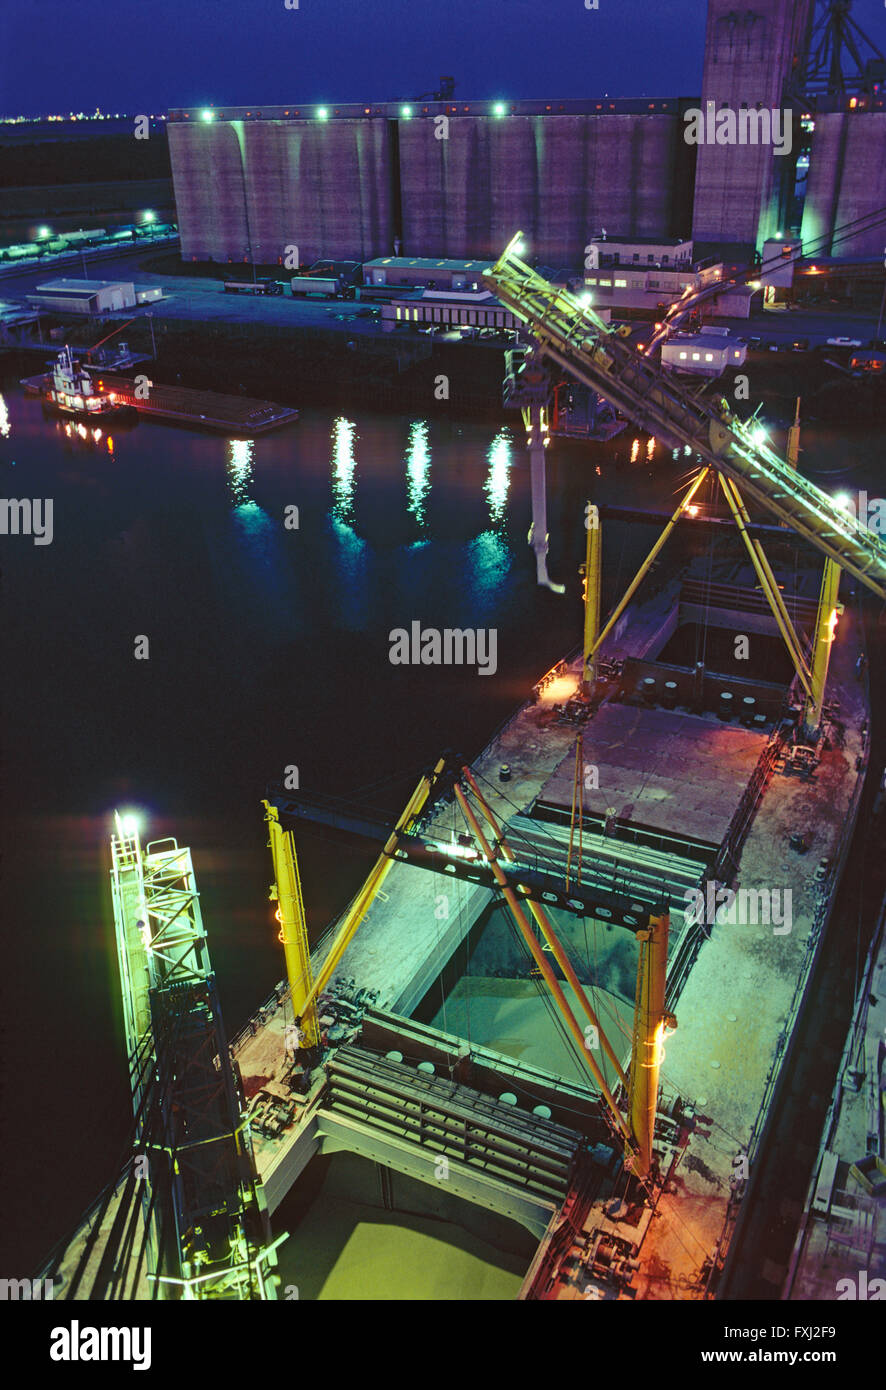 Night view of loading grain from silos onto a freighter ship in the Houston Texas Ship Channel; Texas; USA - Stock Image